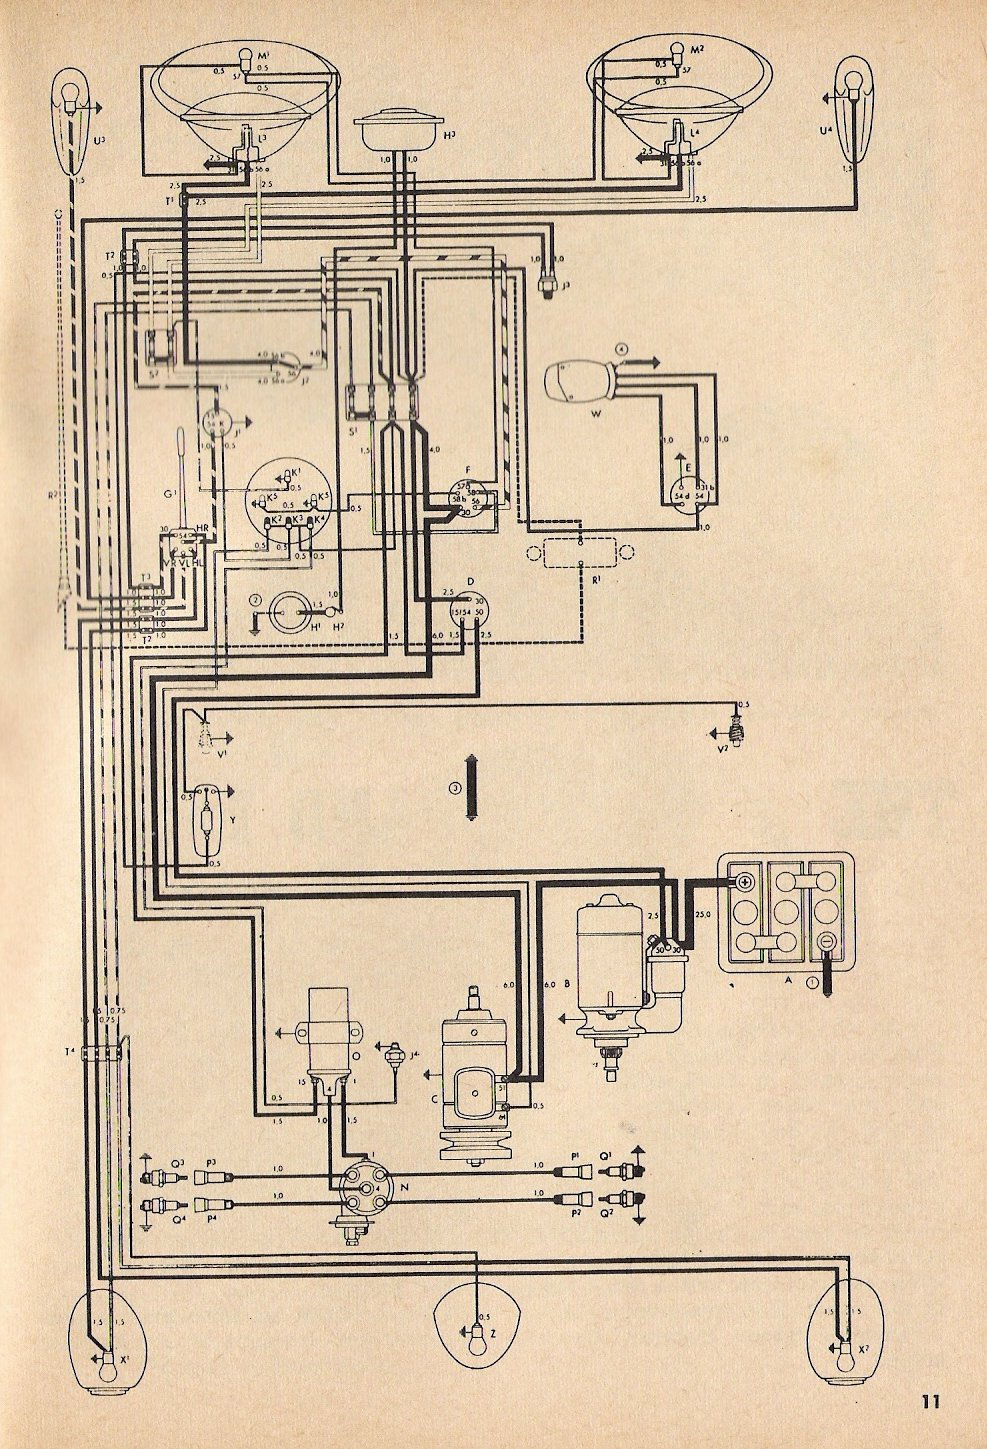 Type 1 Wiring Diagrams 1967 Camaro Convertible Schematic